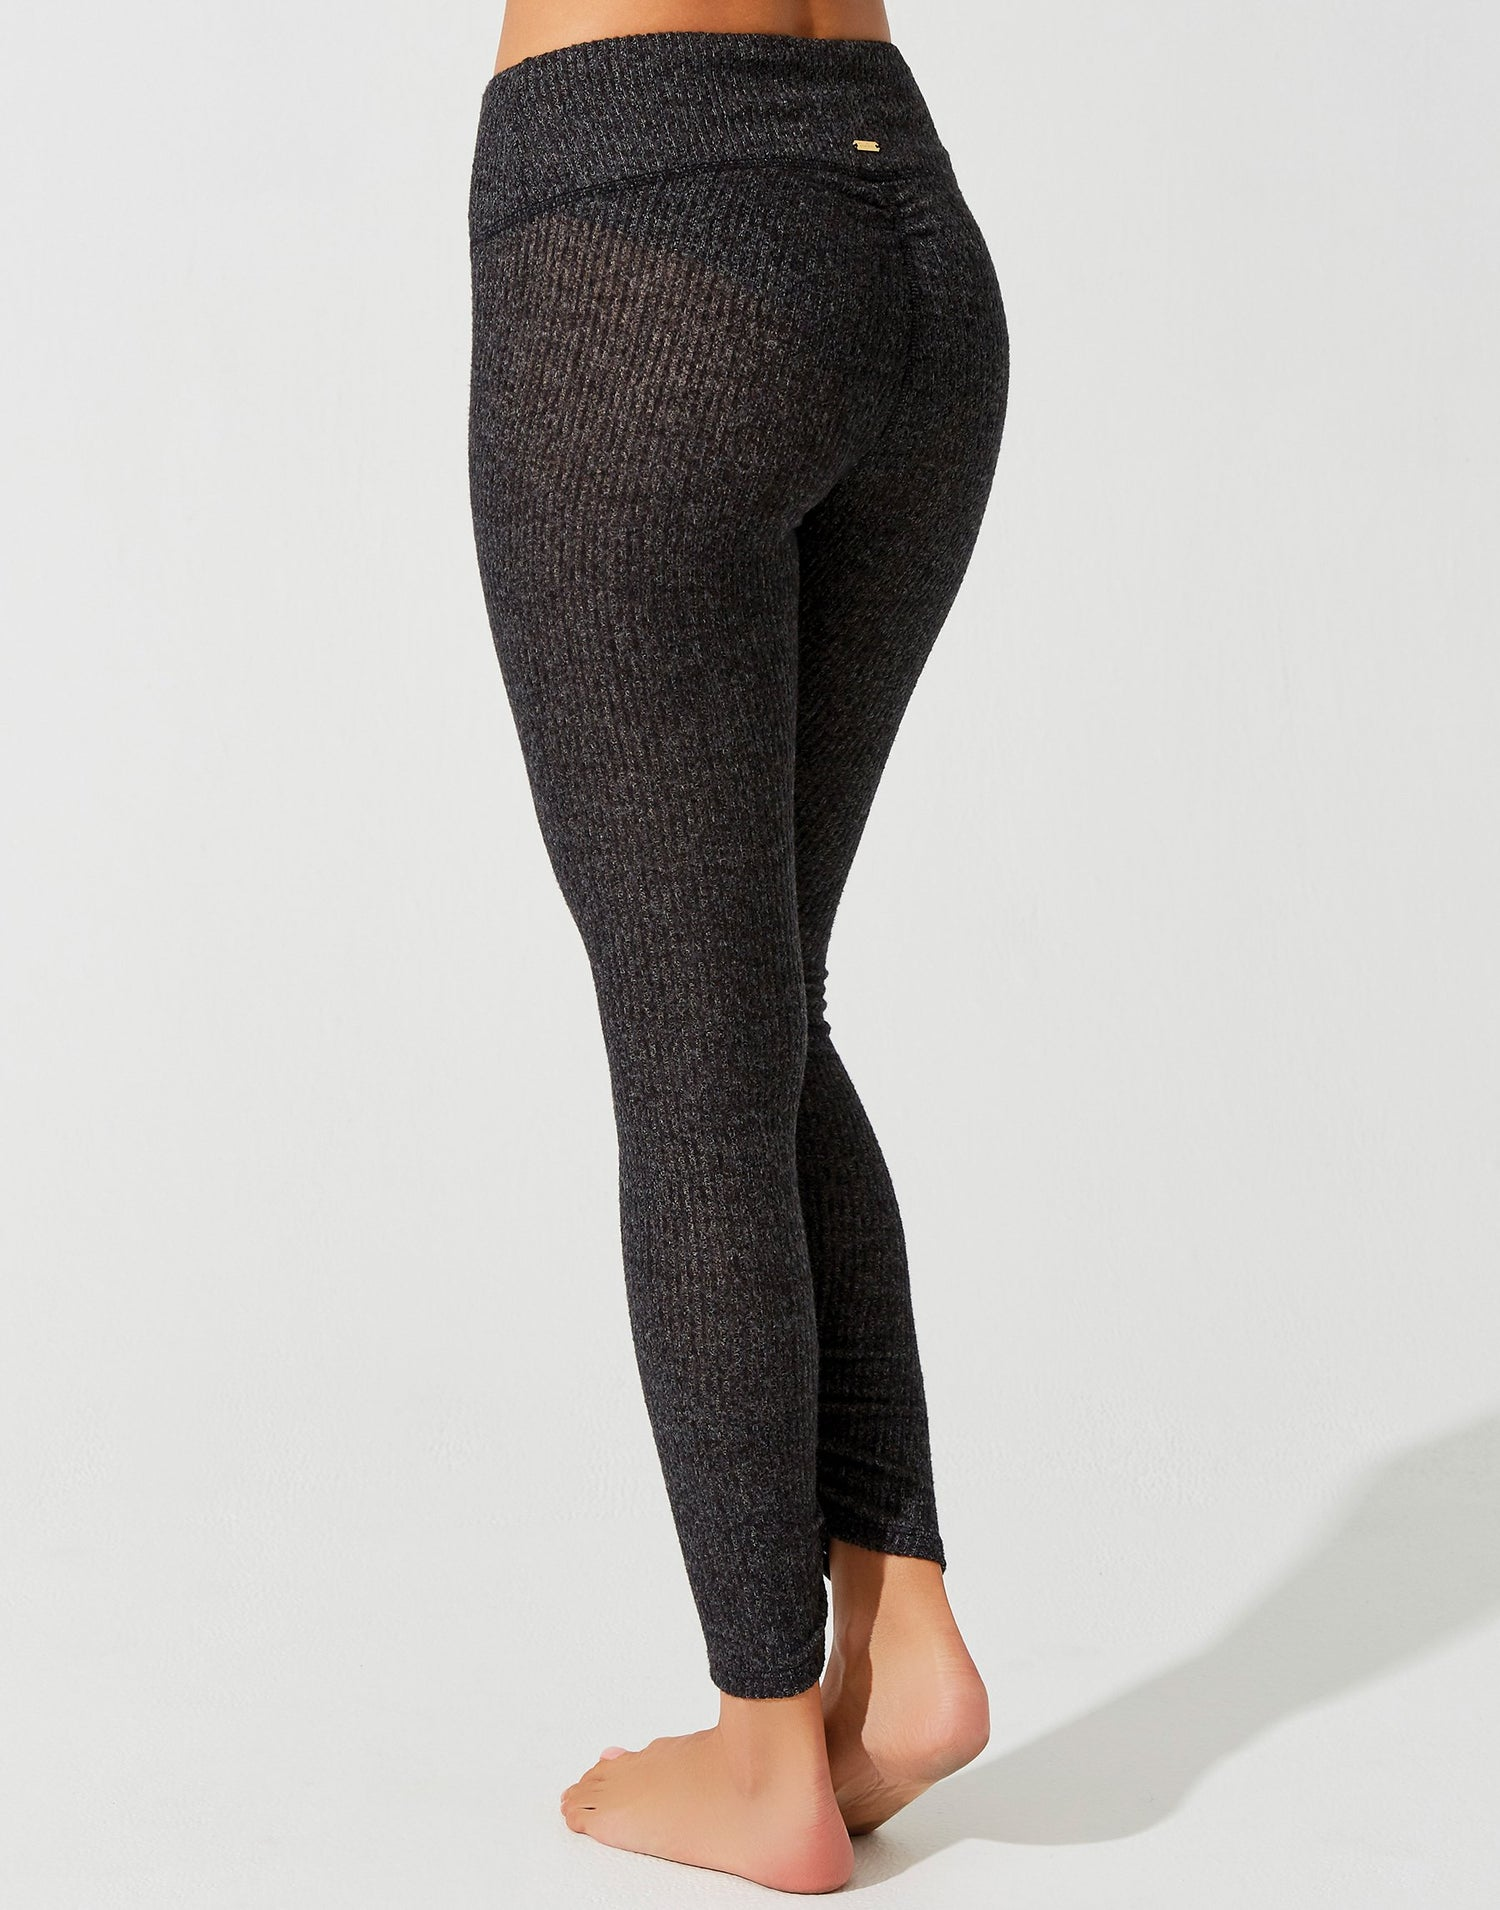 Josie Legging in Black Rib with Ruching at the Bottom Leg - alternate back view